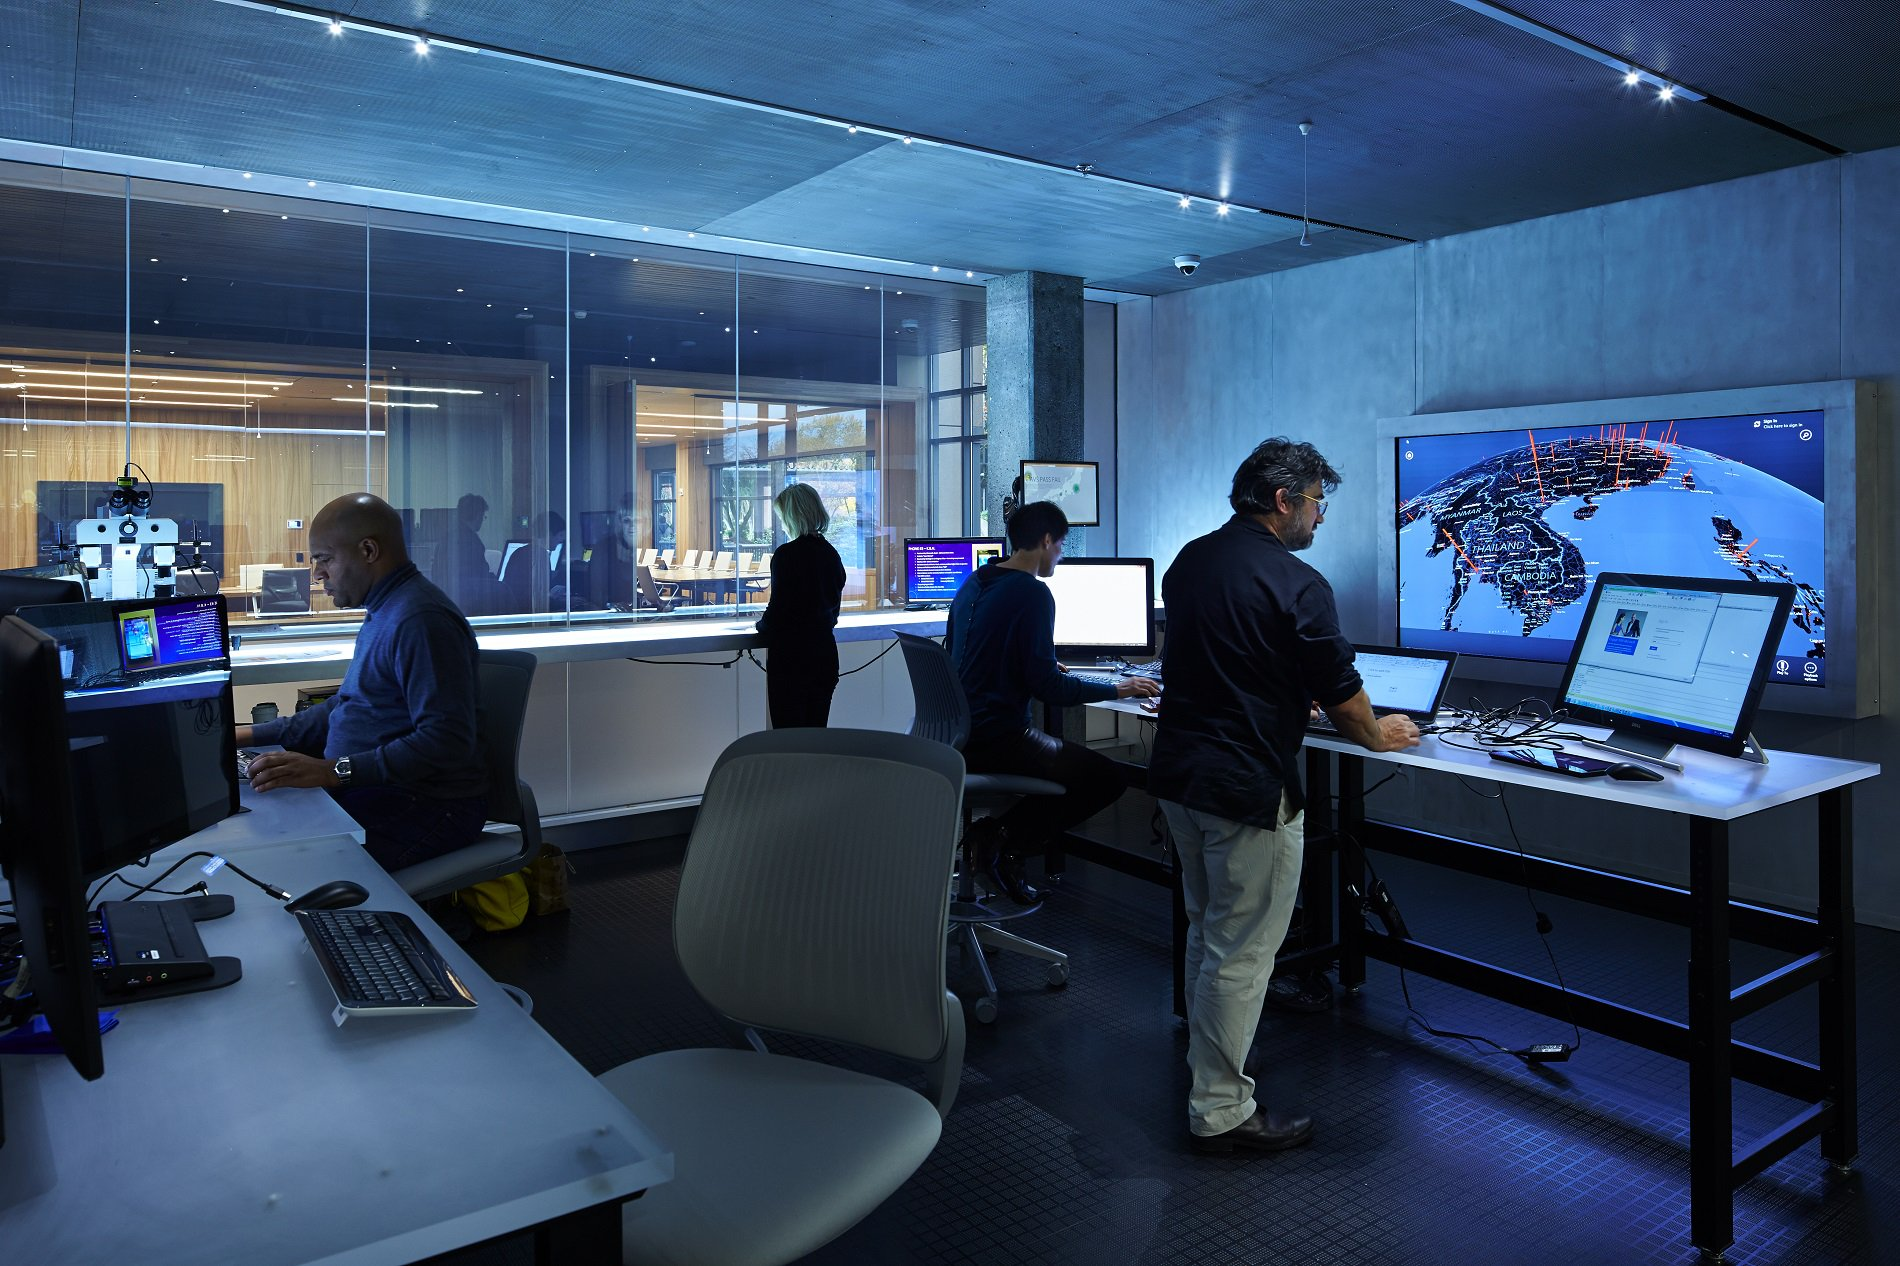 Photo of people working in front of computer screens with maps of the world